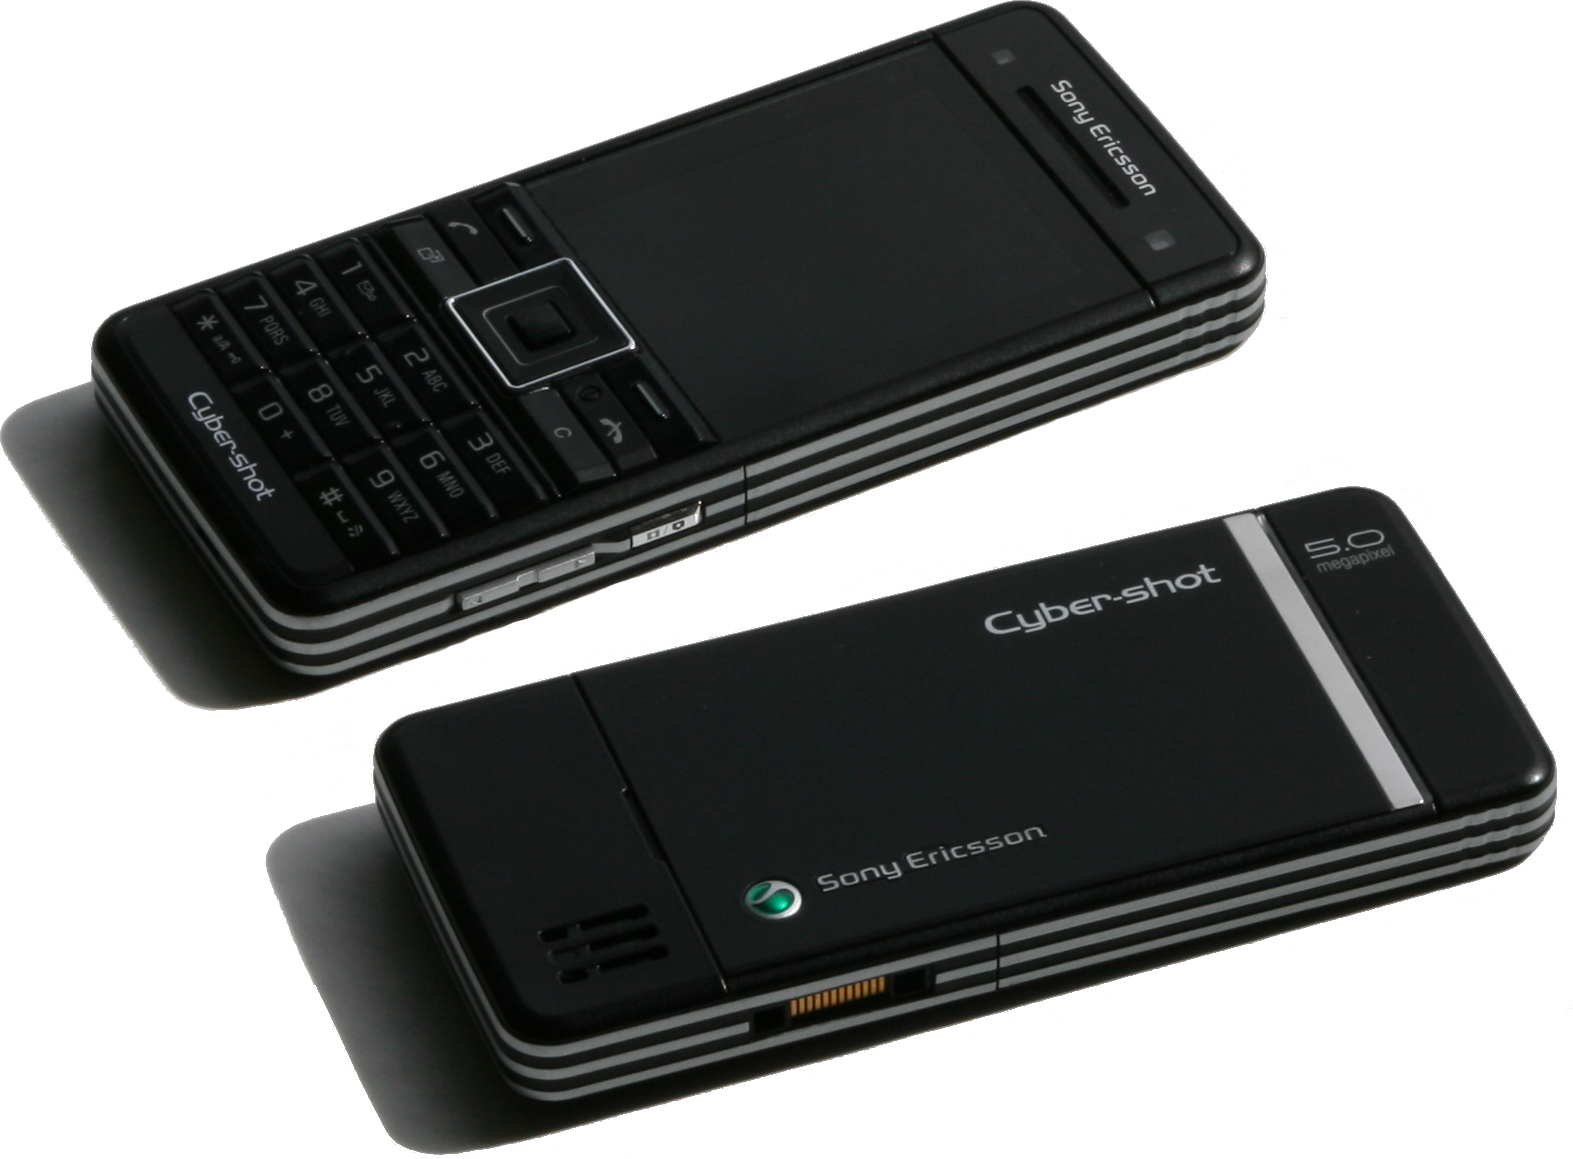 Sony_Ericsson_C902_%28Swift_Black%29%2C_front_and_back.jpg